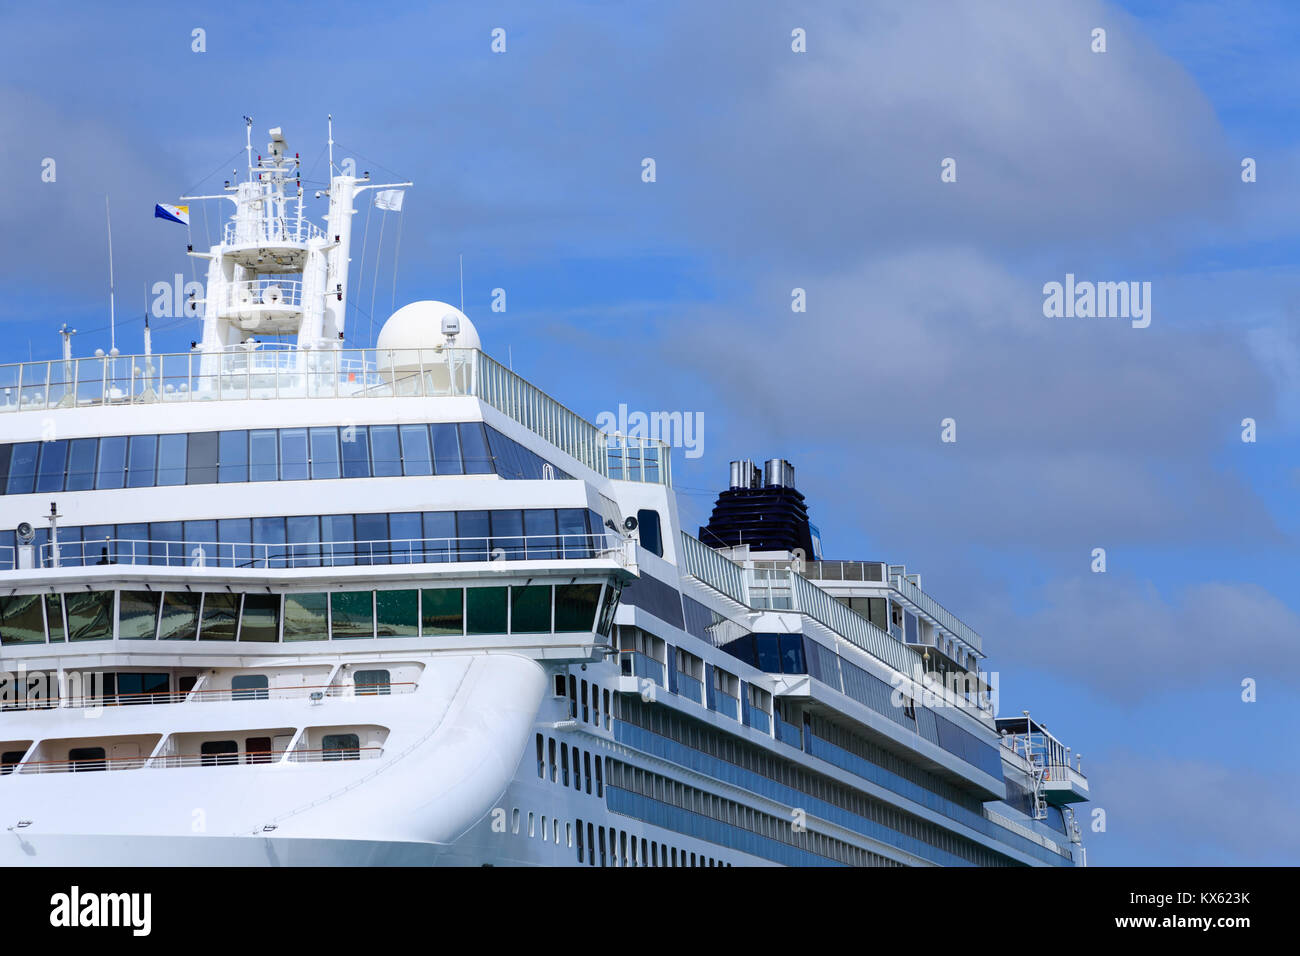 View of Upper Decks of Luxury Cruise Ship Stock Photo